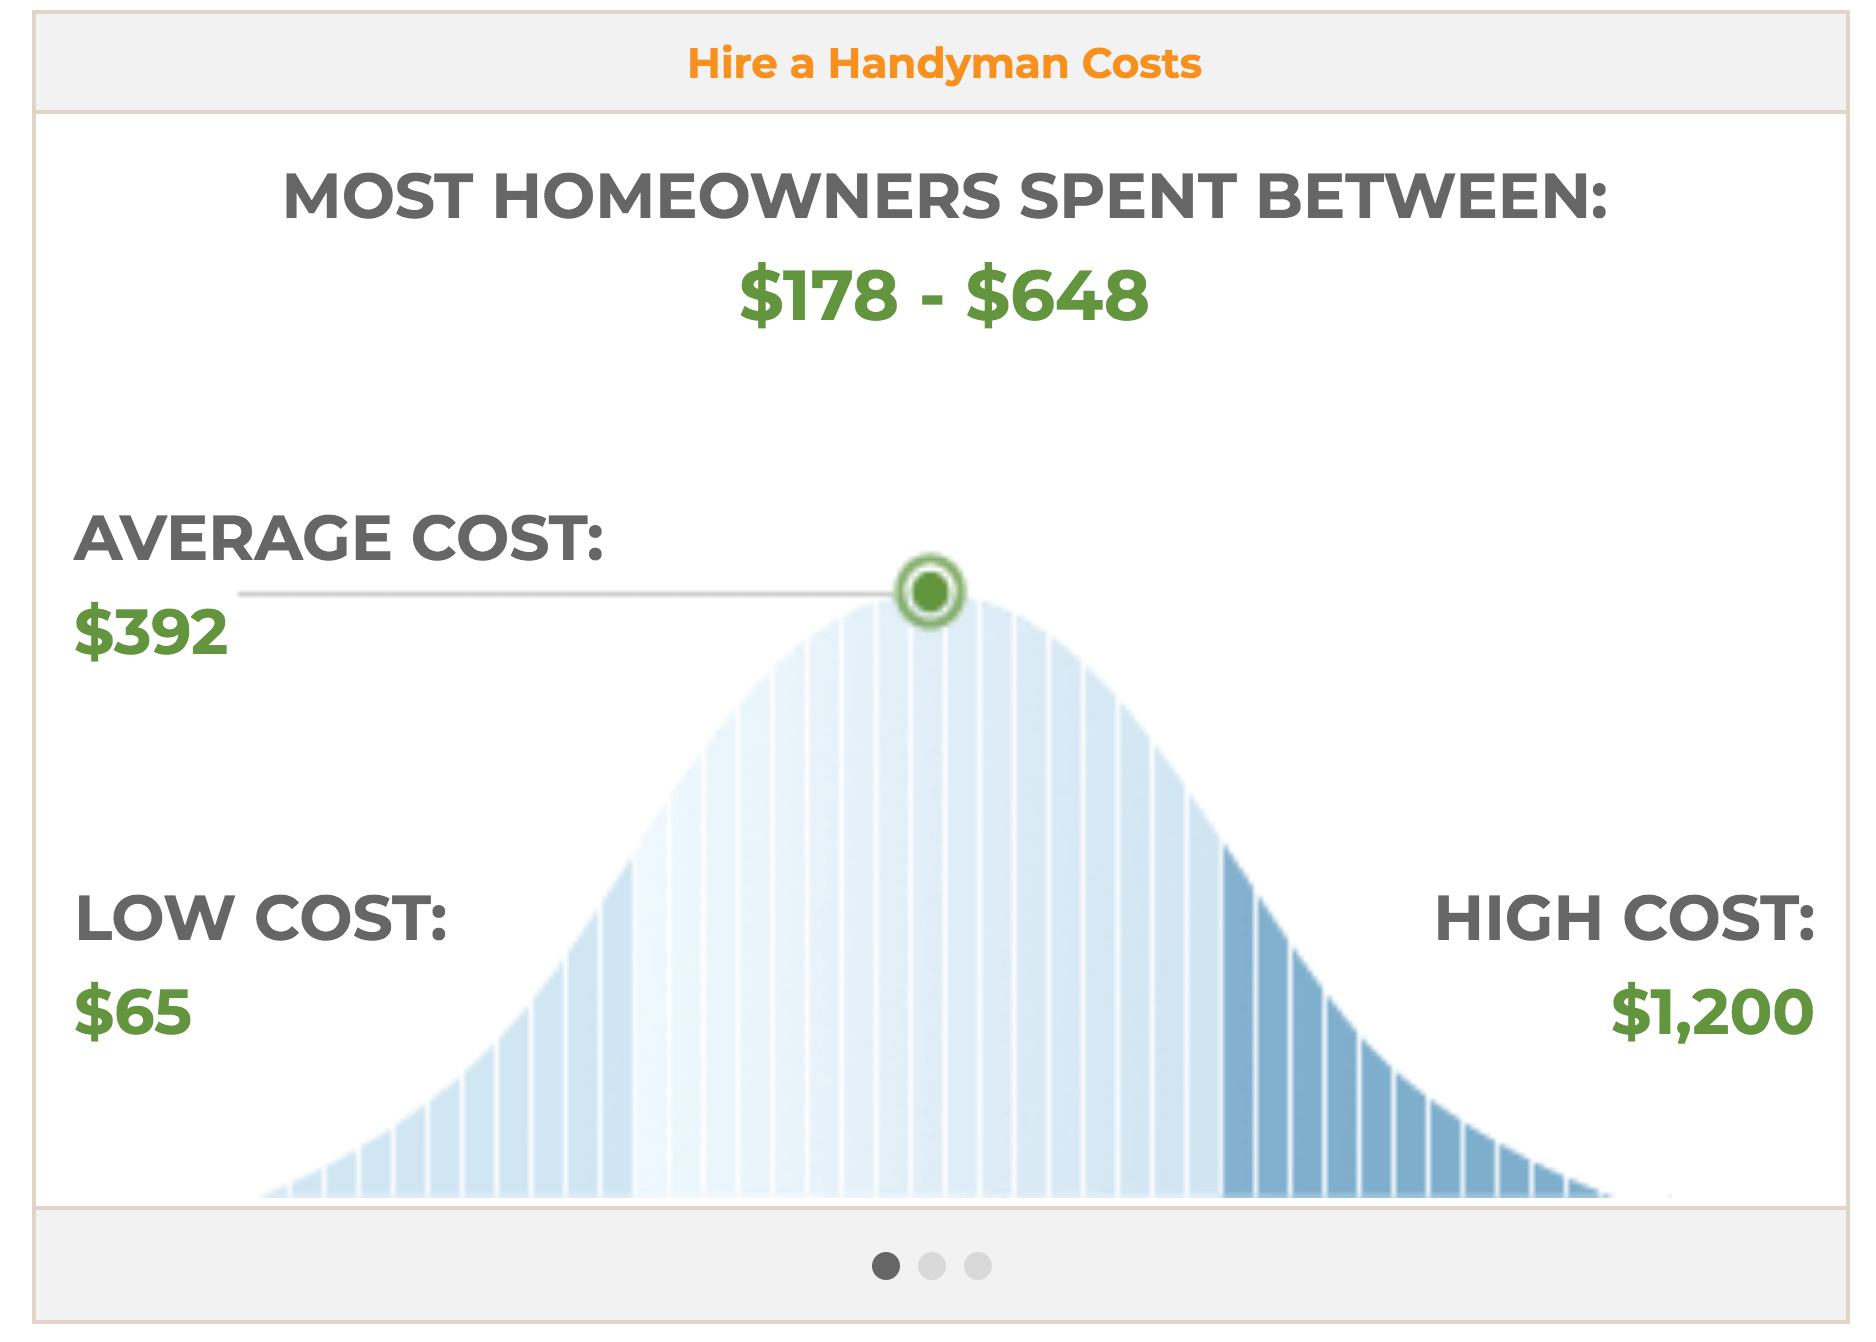 A graph showing average general contractor costs for homeowners.